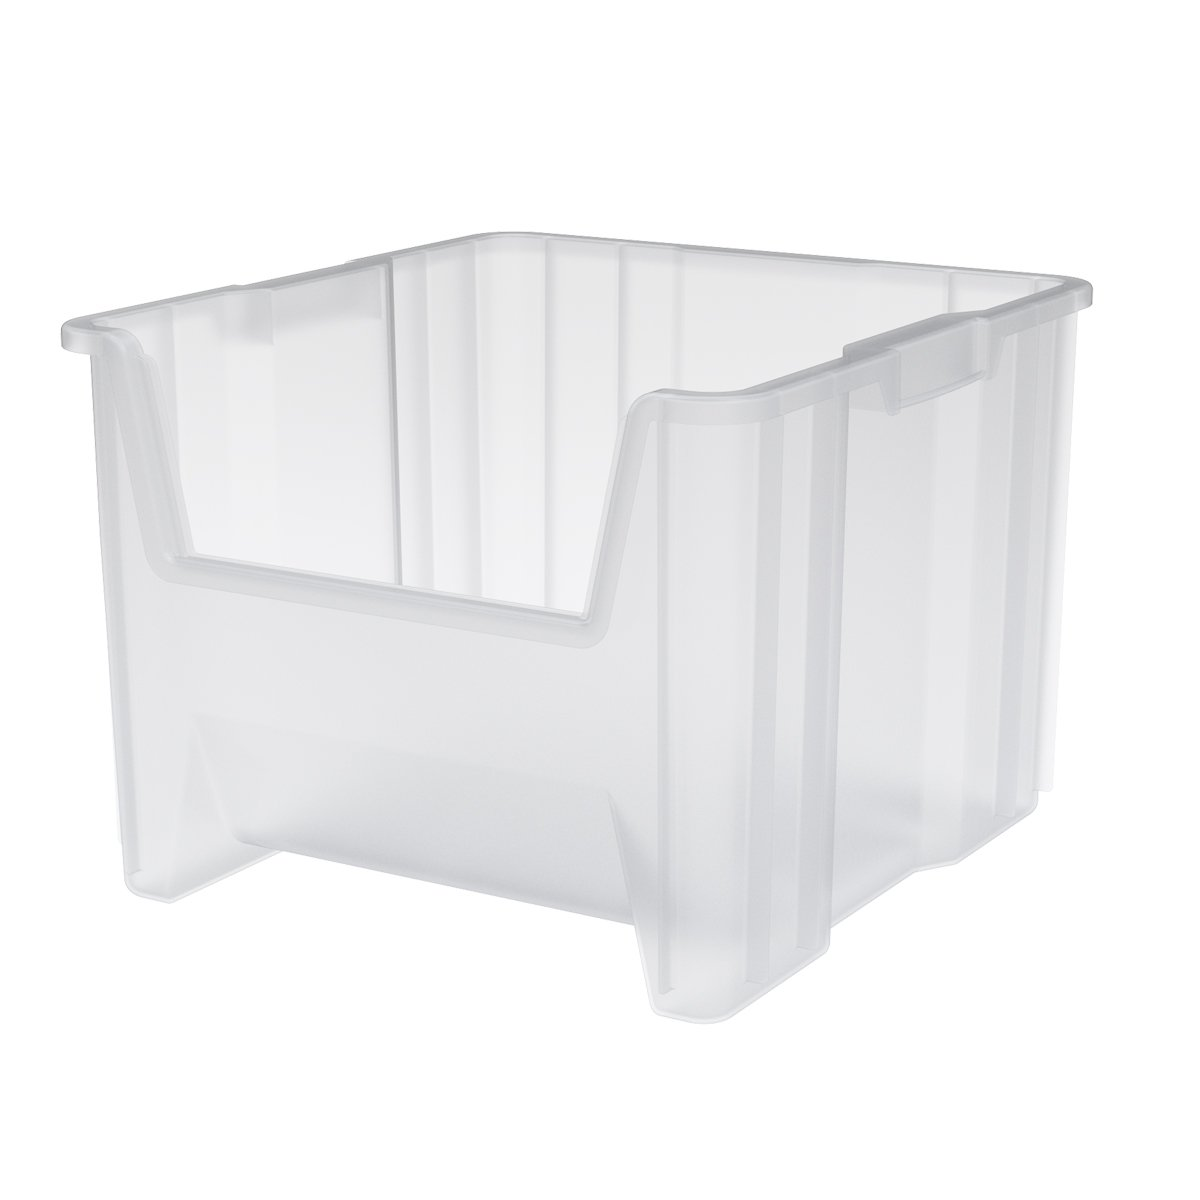 Akro-Mils 13018 Stak-N-Store Stacking Hopper Front Plastic Storage Bin, Clear, Case of 2